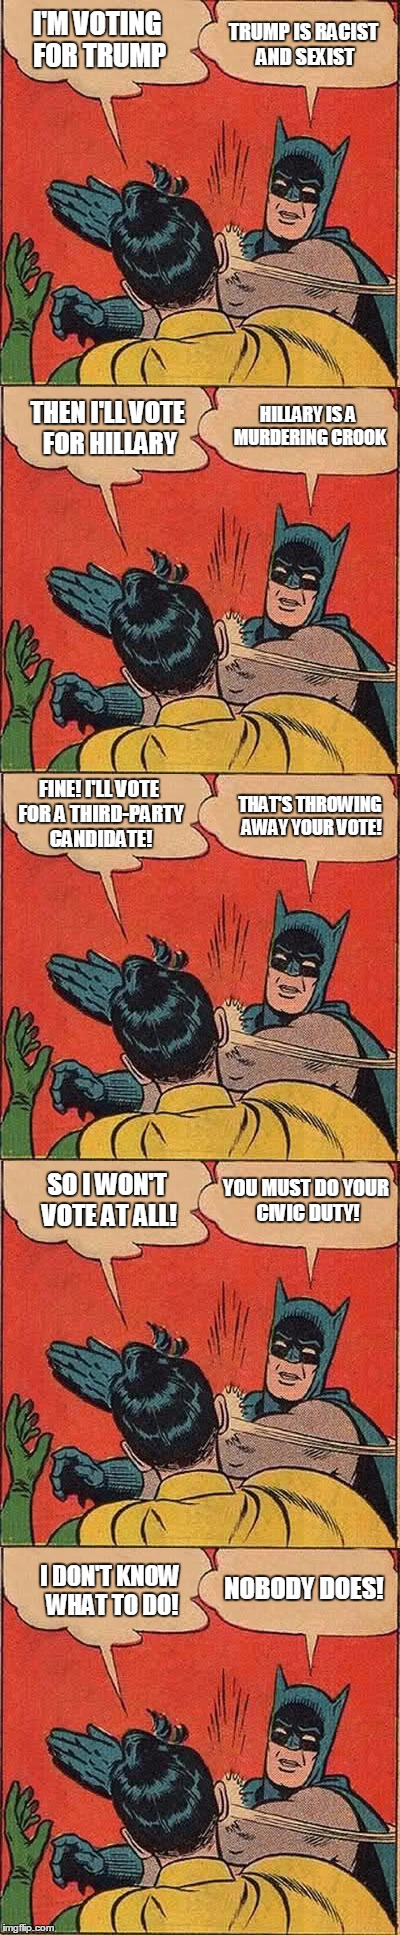 Election 2016 | I'M VOTING FOR TRUMP THEN I'LL VOTE FOR HILLARY TRUMP IS RACIST AND SEXIST HILLARY IS A MURDERING CROOK FINE! I'LL VOTE FOR A THIRD-PARTY CA | image tagged in batman slapping robin,election 2016 | made w/ Imgflip meme maker